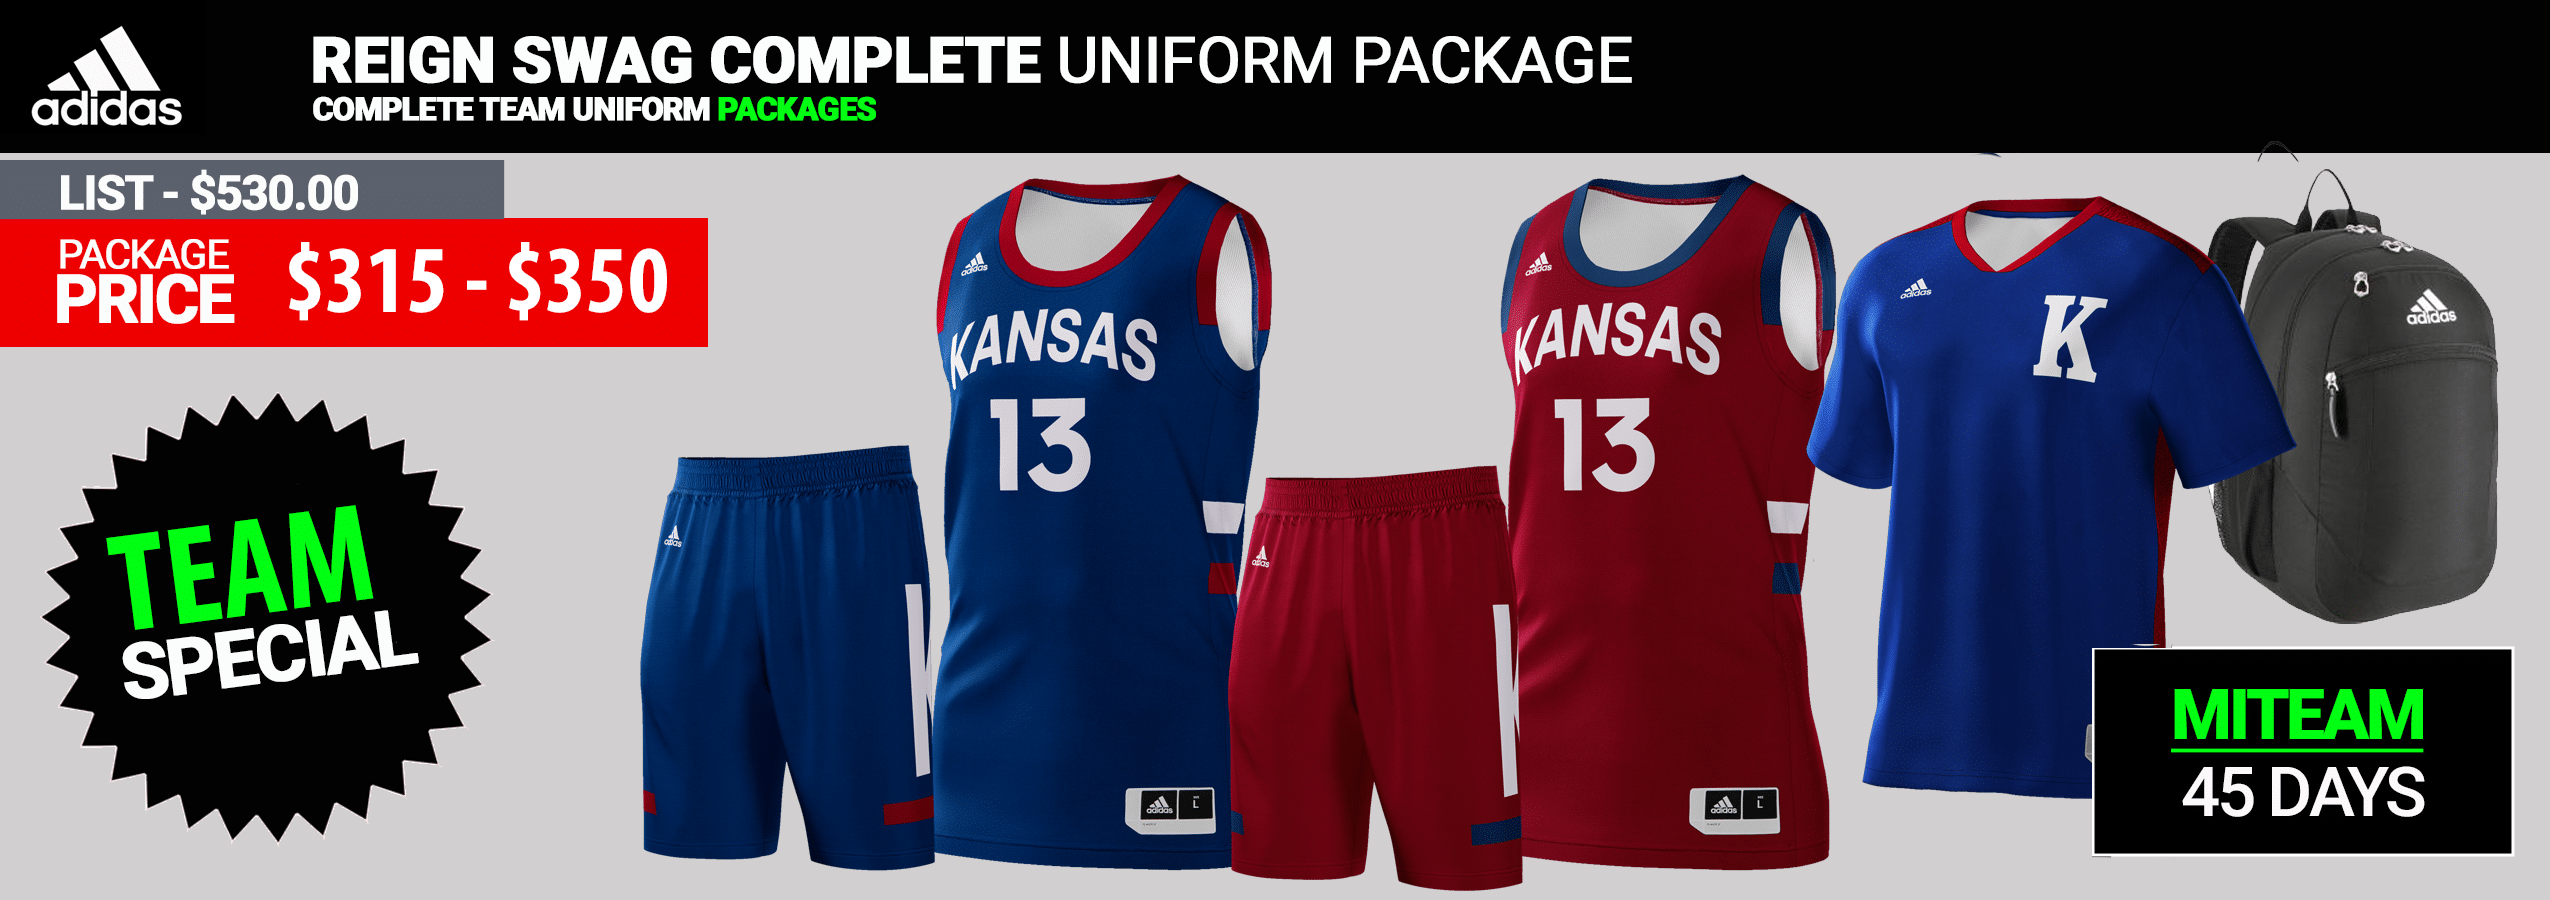 Adidas Custom Reversible Youth Basketball Uniform Package